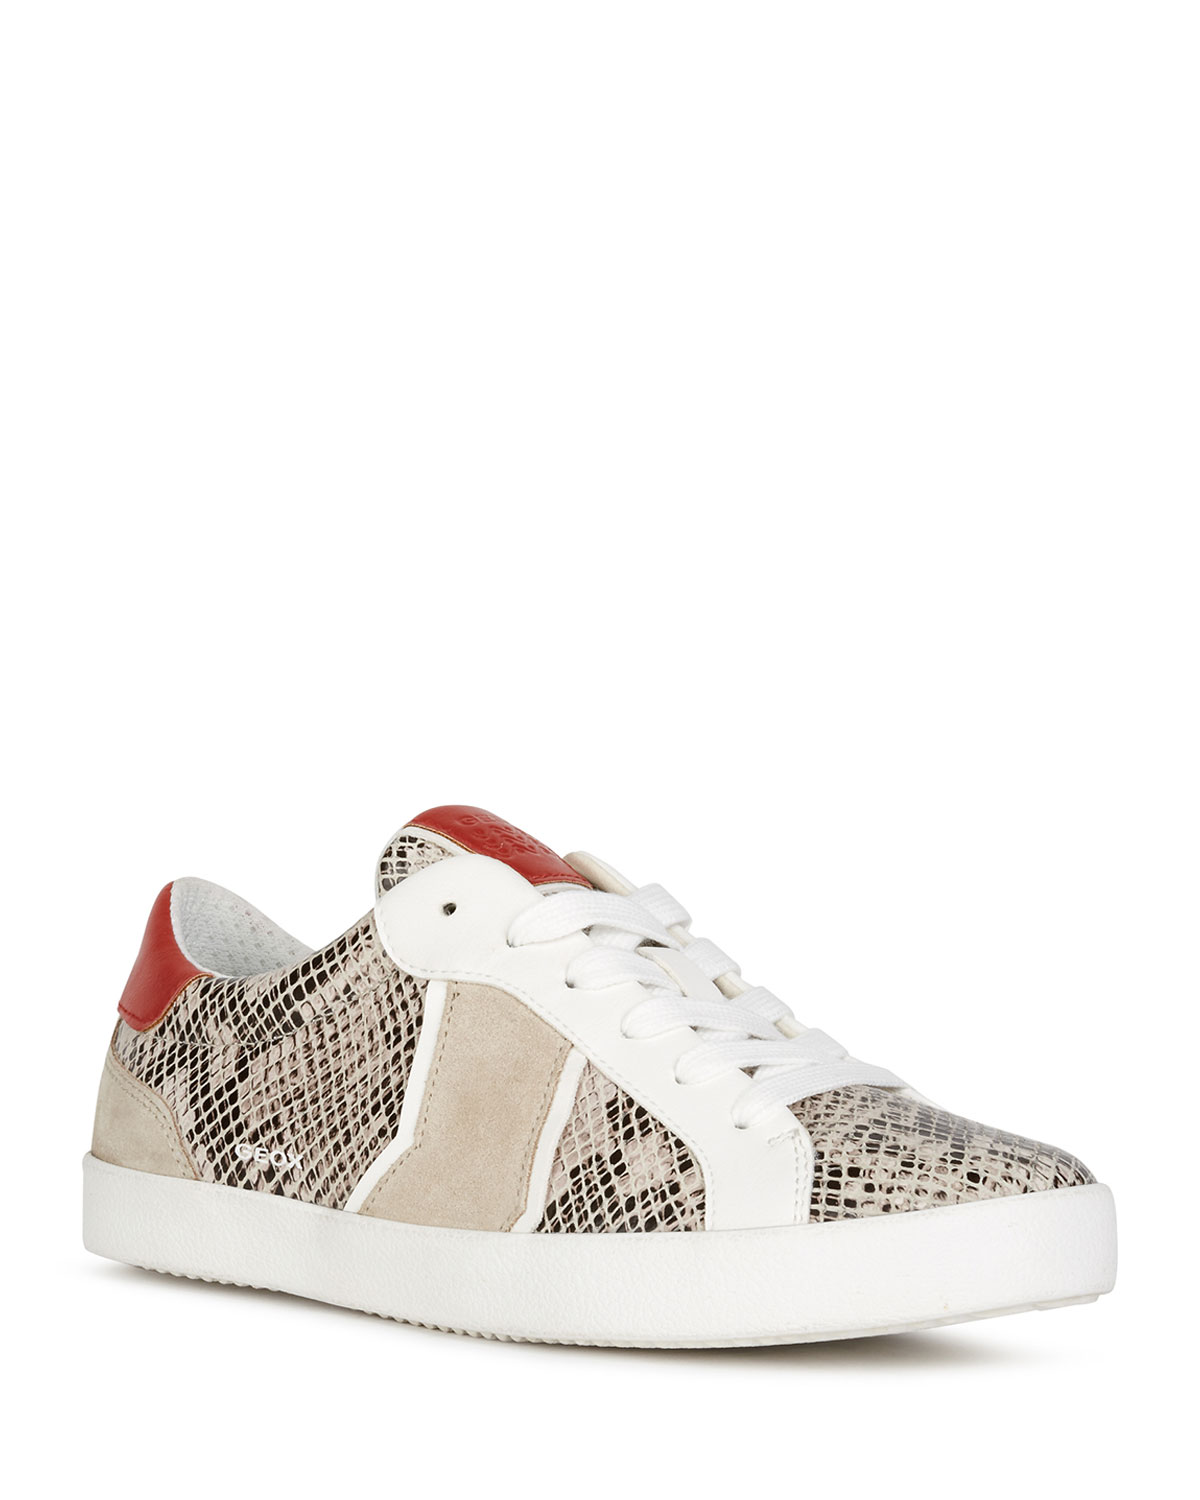 Geox Sneakers WARLEY MIXED LEATHER LOW-TOP SNEAKERS